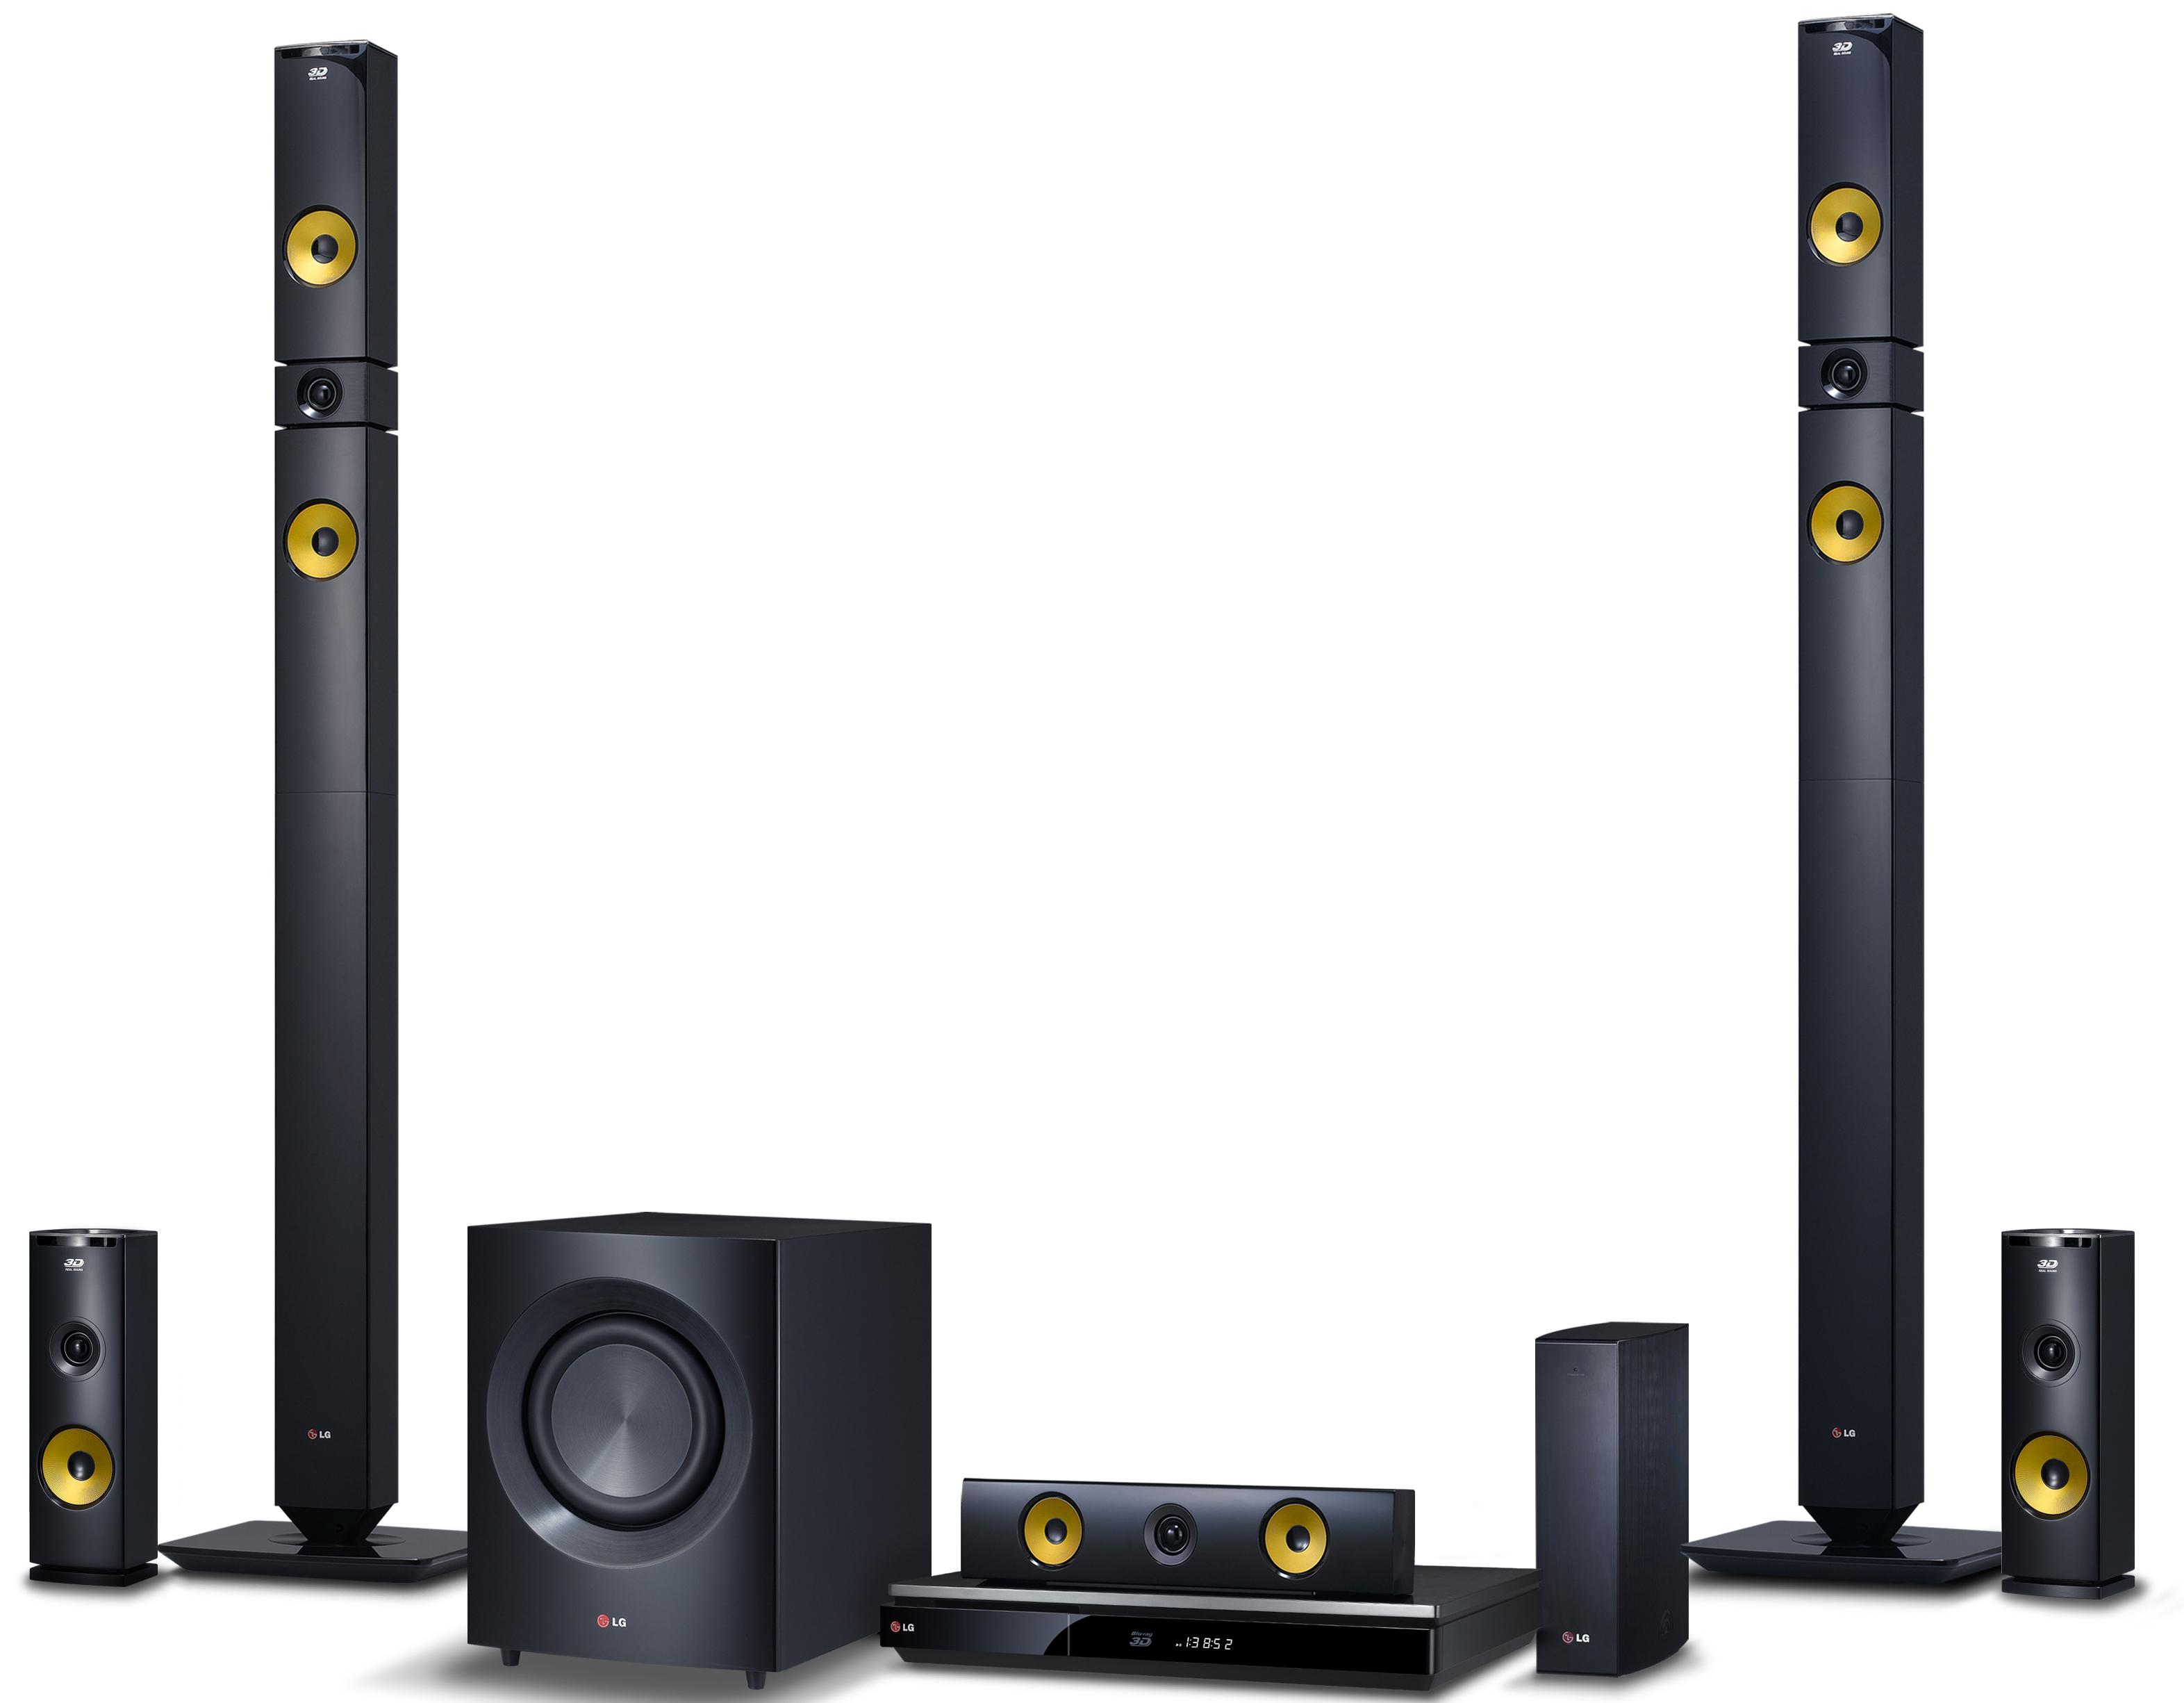 LG Electronics Home Theater 9.1 Channel Home Theater System - Item Number: BH9430PW